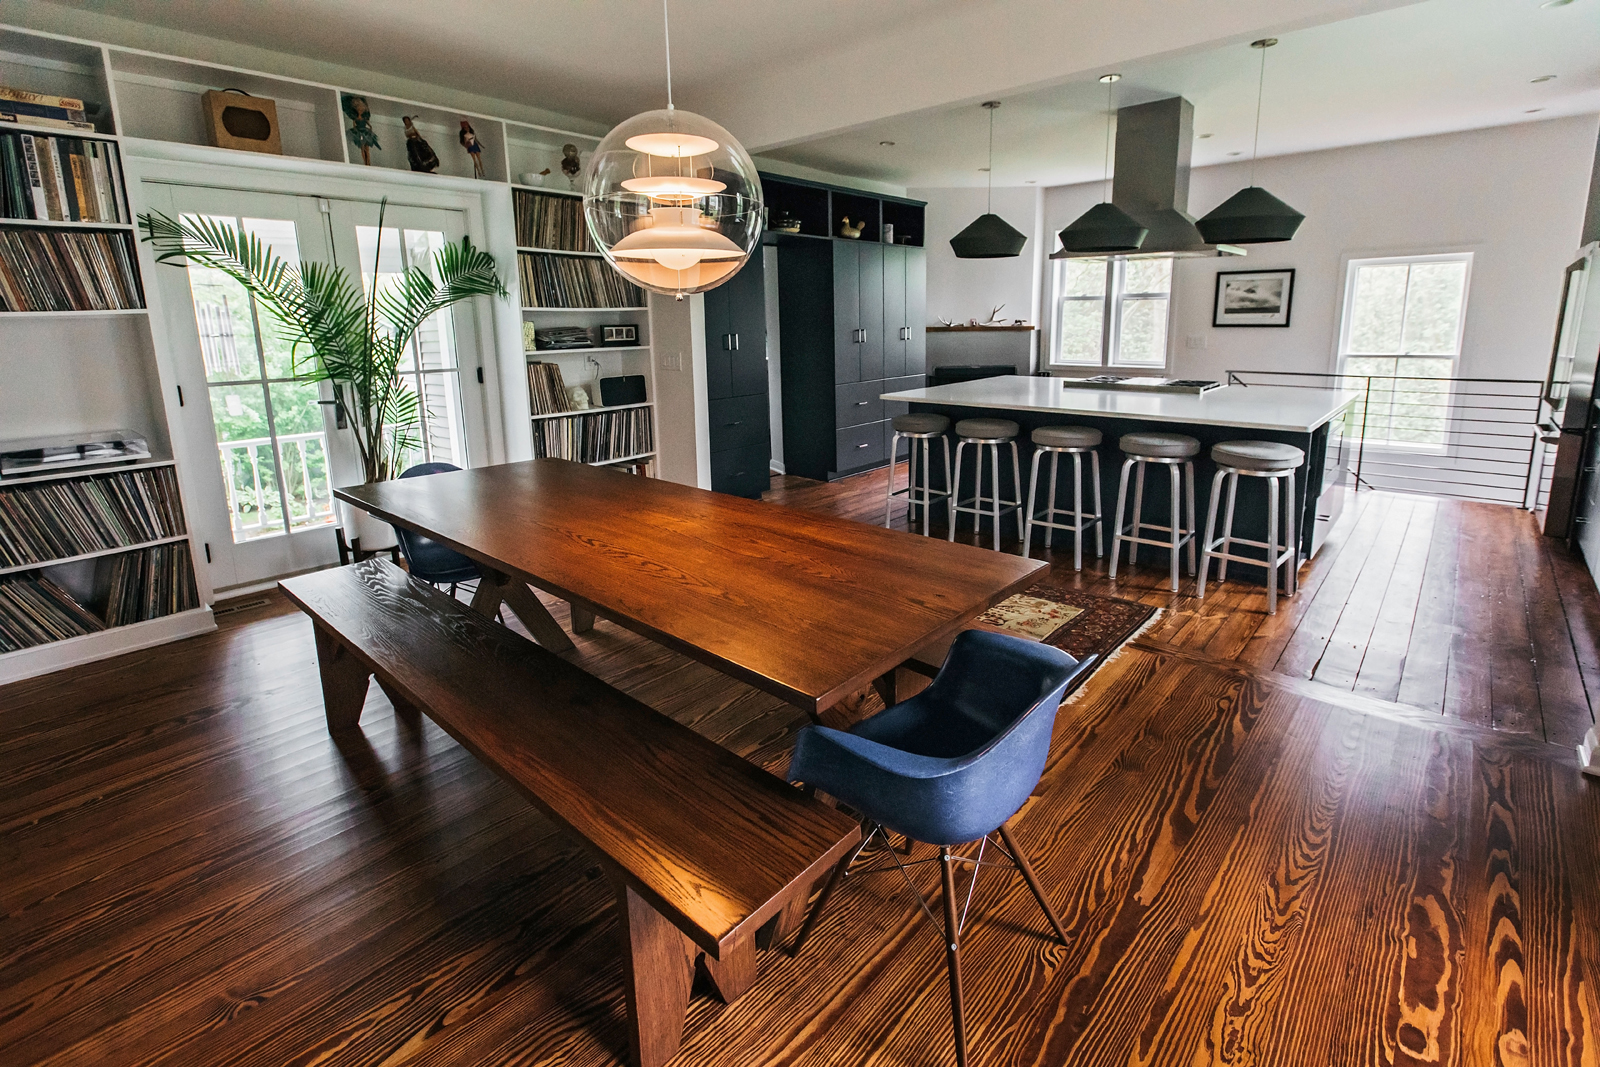 5.15.18 - Oliver Architecture - Chagrin Falls Residence Remodel-5_optimized.jpg